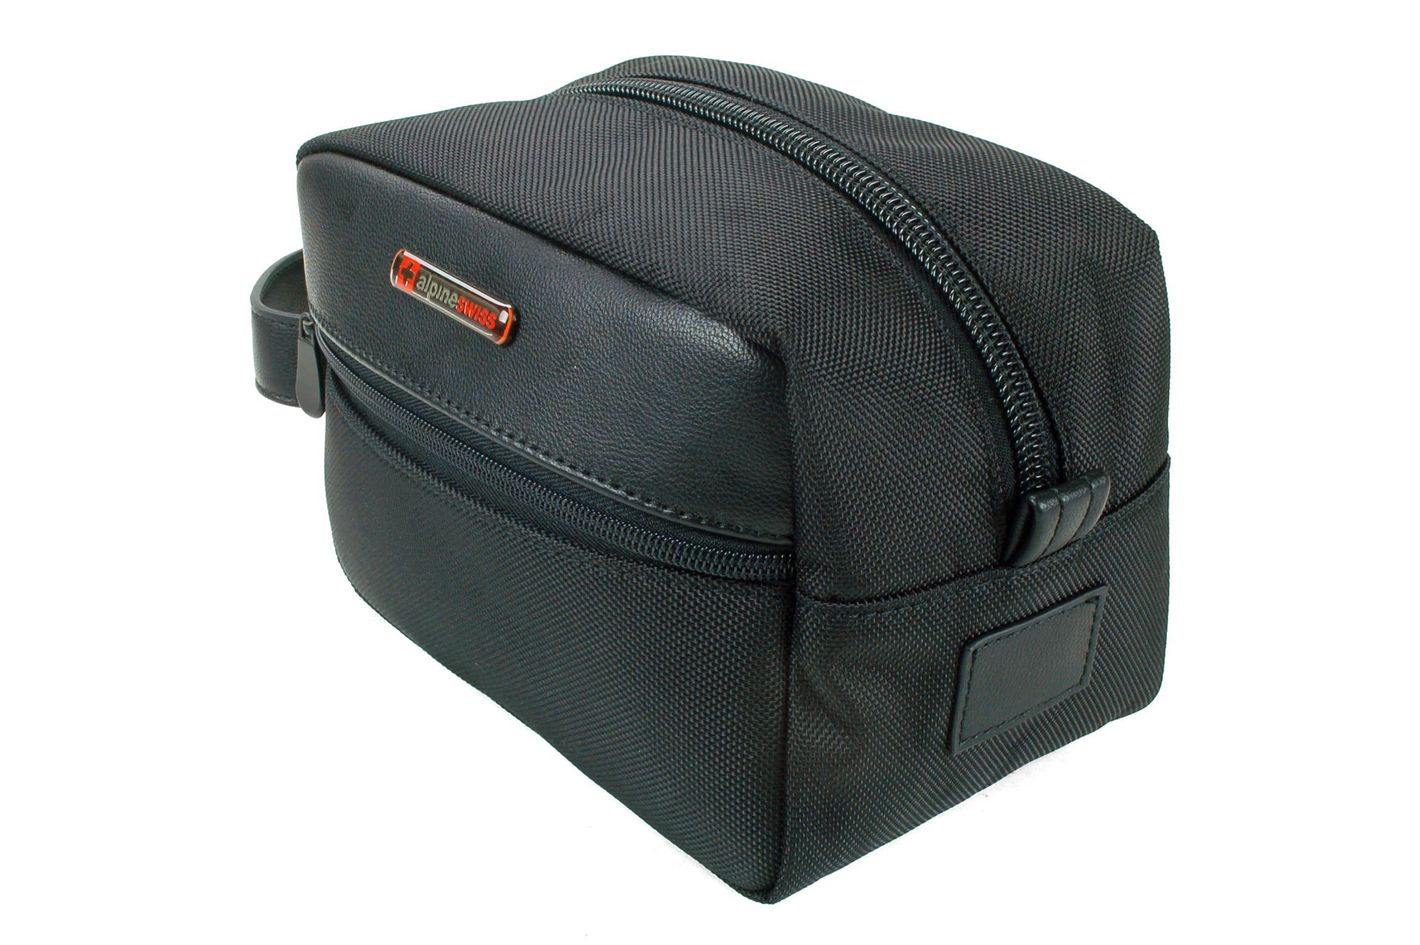 2c596afab4b5 Alpine Swiss Hudson Travel Toiletry Bag Shaving Dopp Kit Case at Amazon